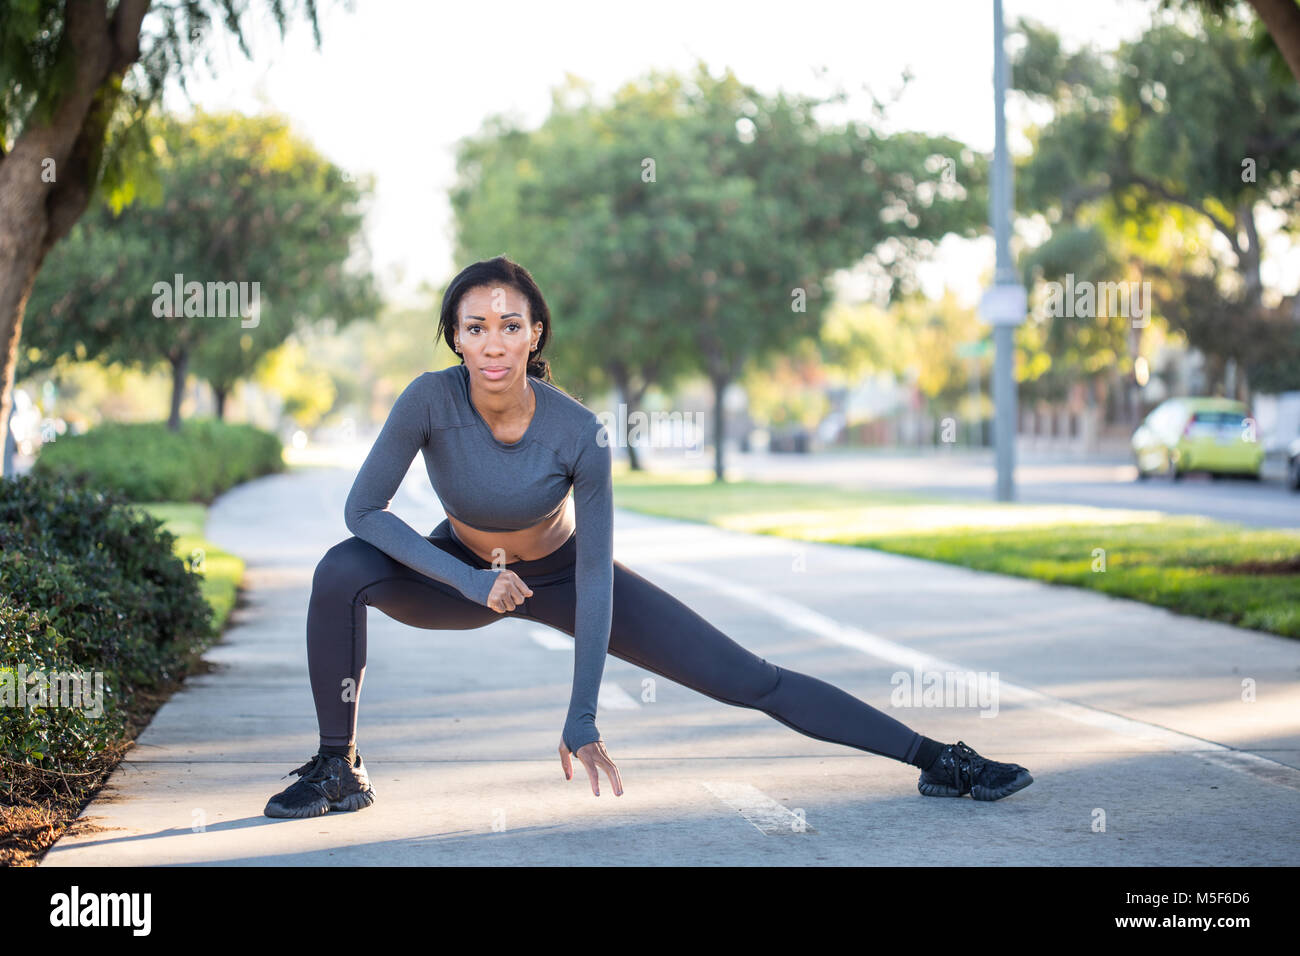 Young sporty woman in workout clothes stretching on a bike path  - Stock Image